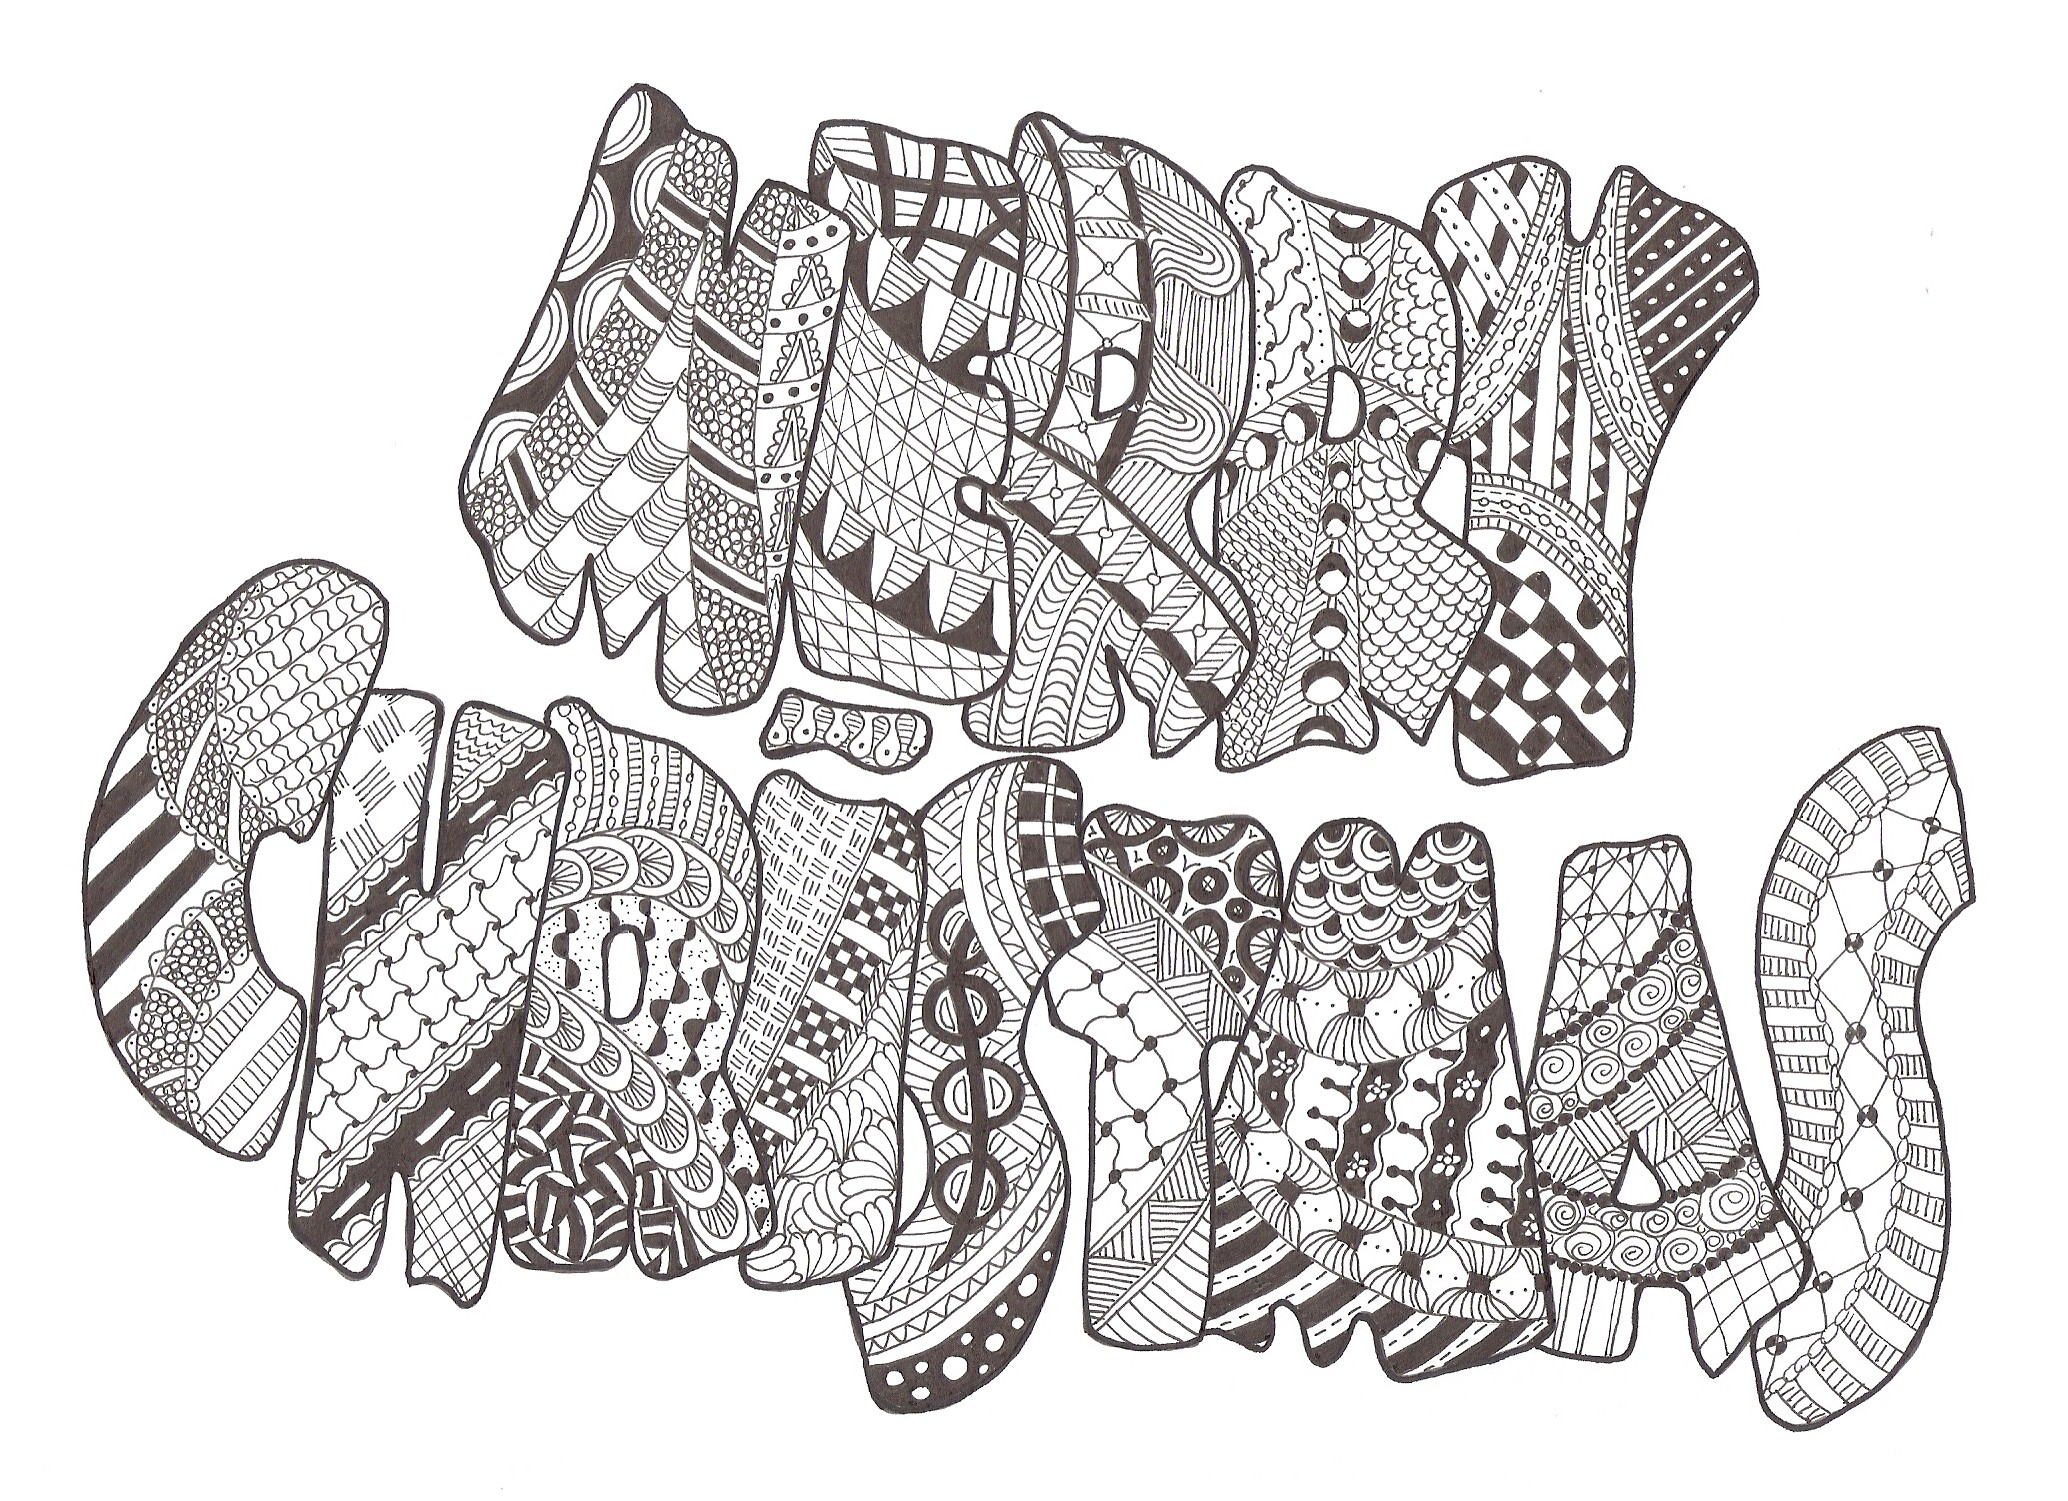 2068x1501 Zentangle Made By Mariska Den Boer 83 Zentangles N Drawings